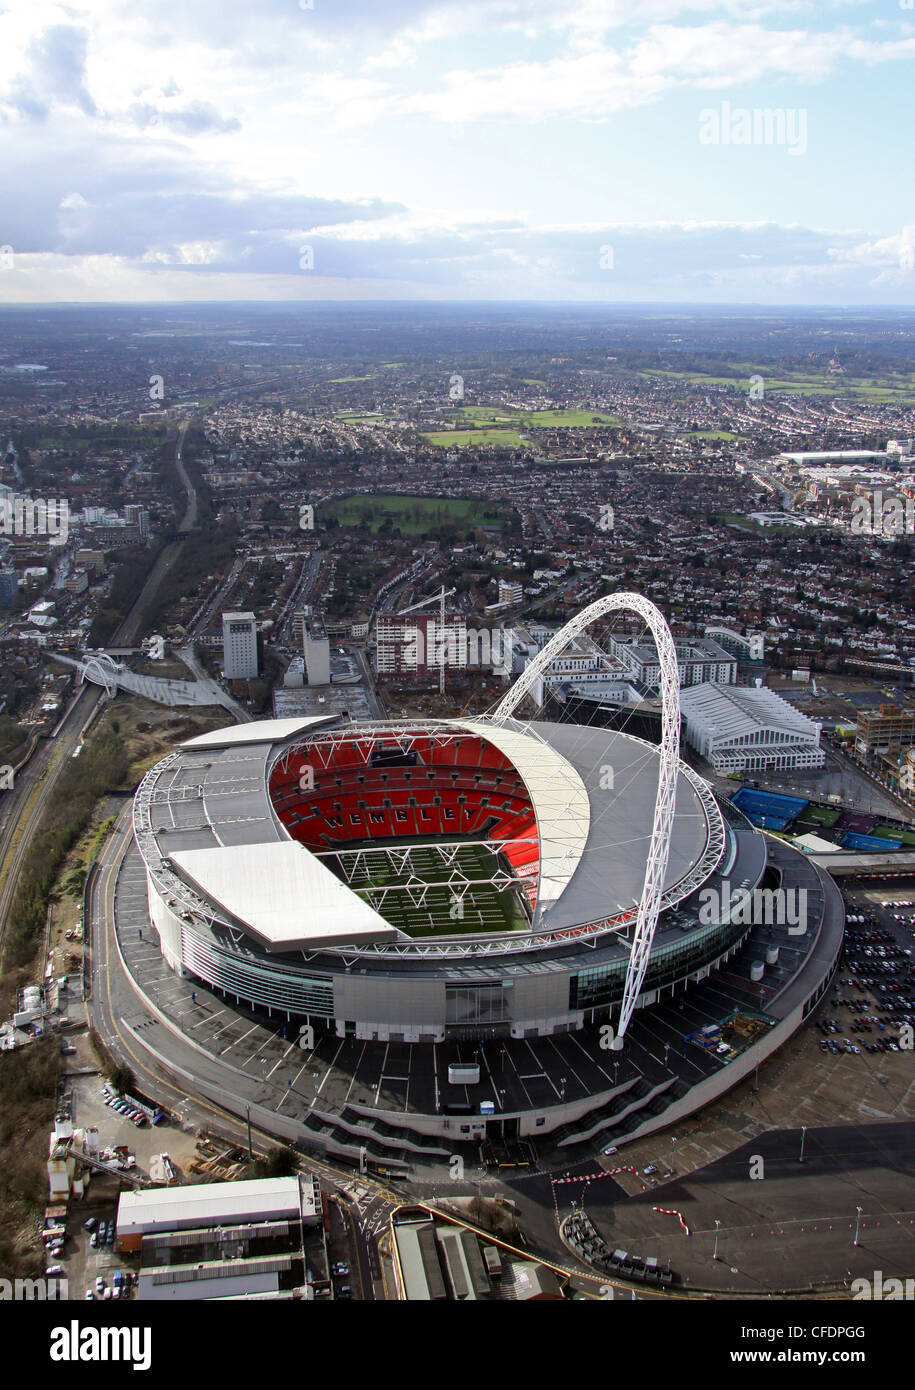 Aerial image of Wembley Stadium, London - Stock Image